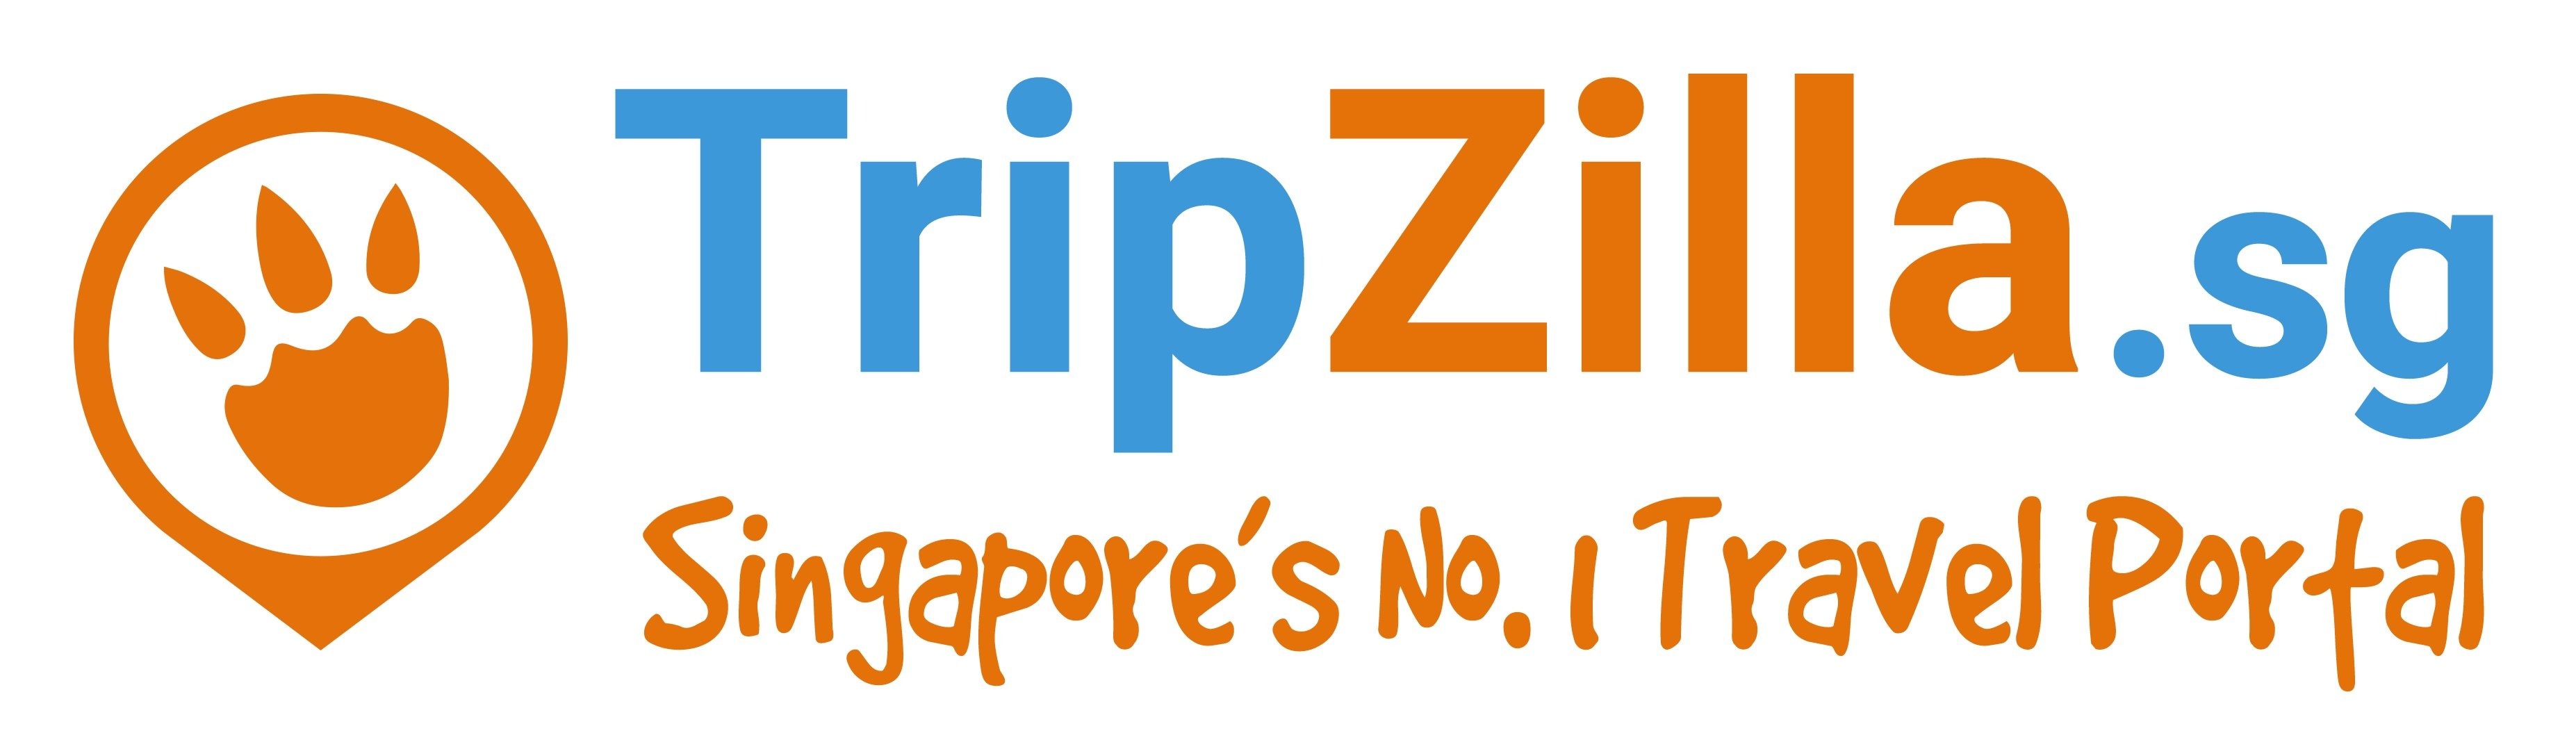 TripZilla.sg